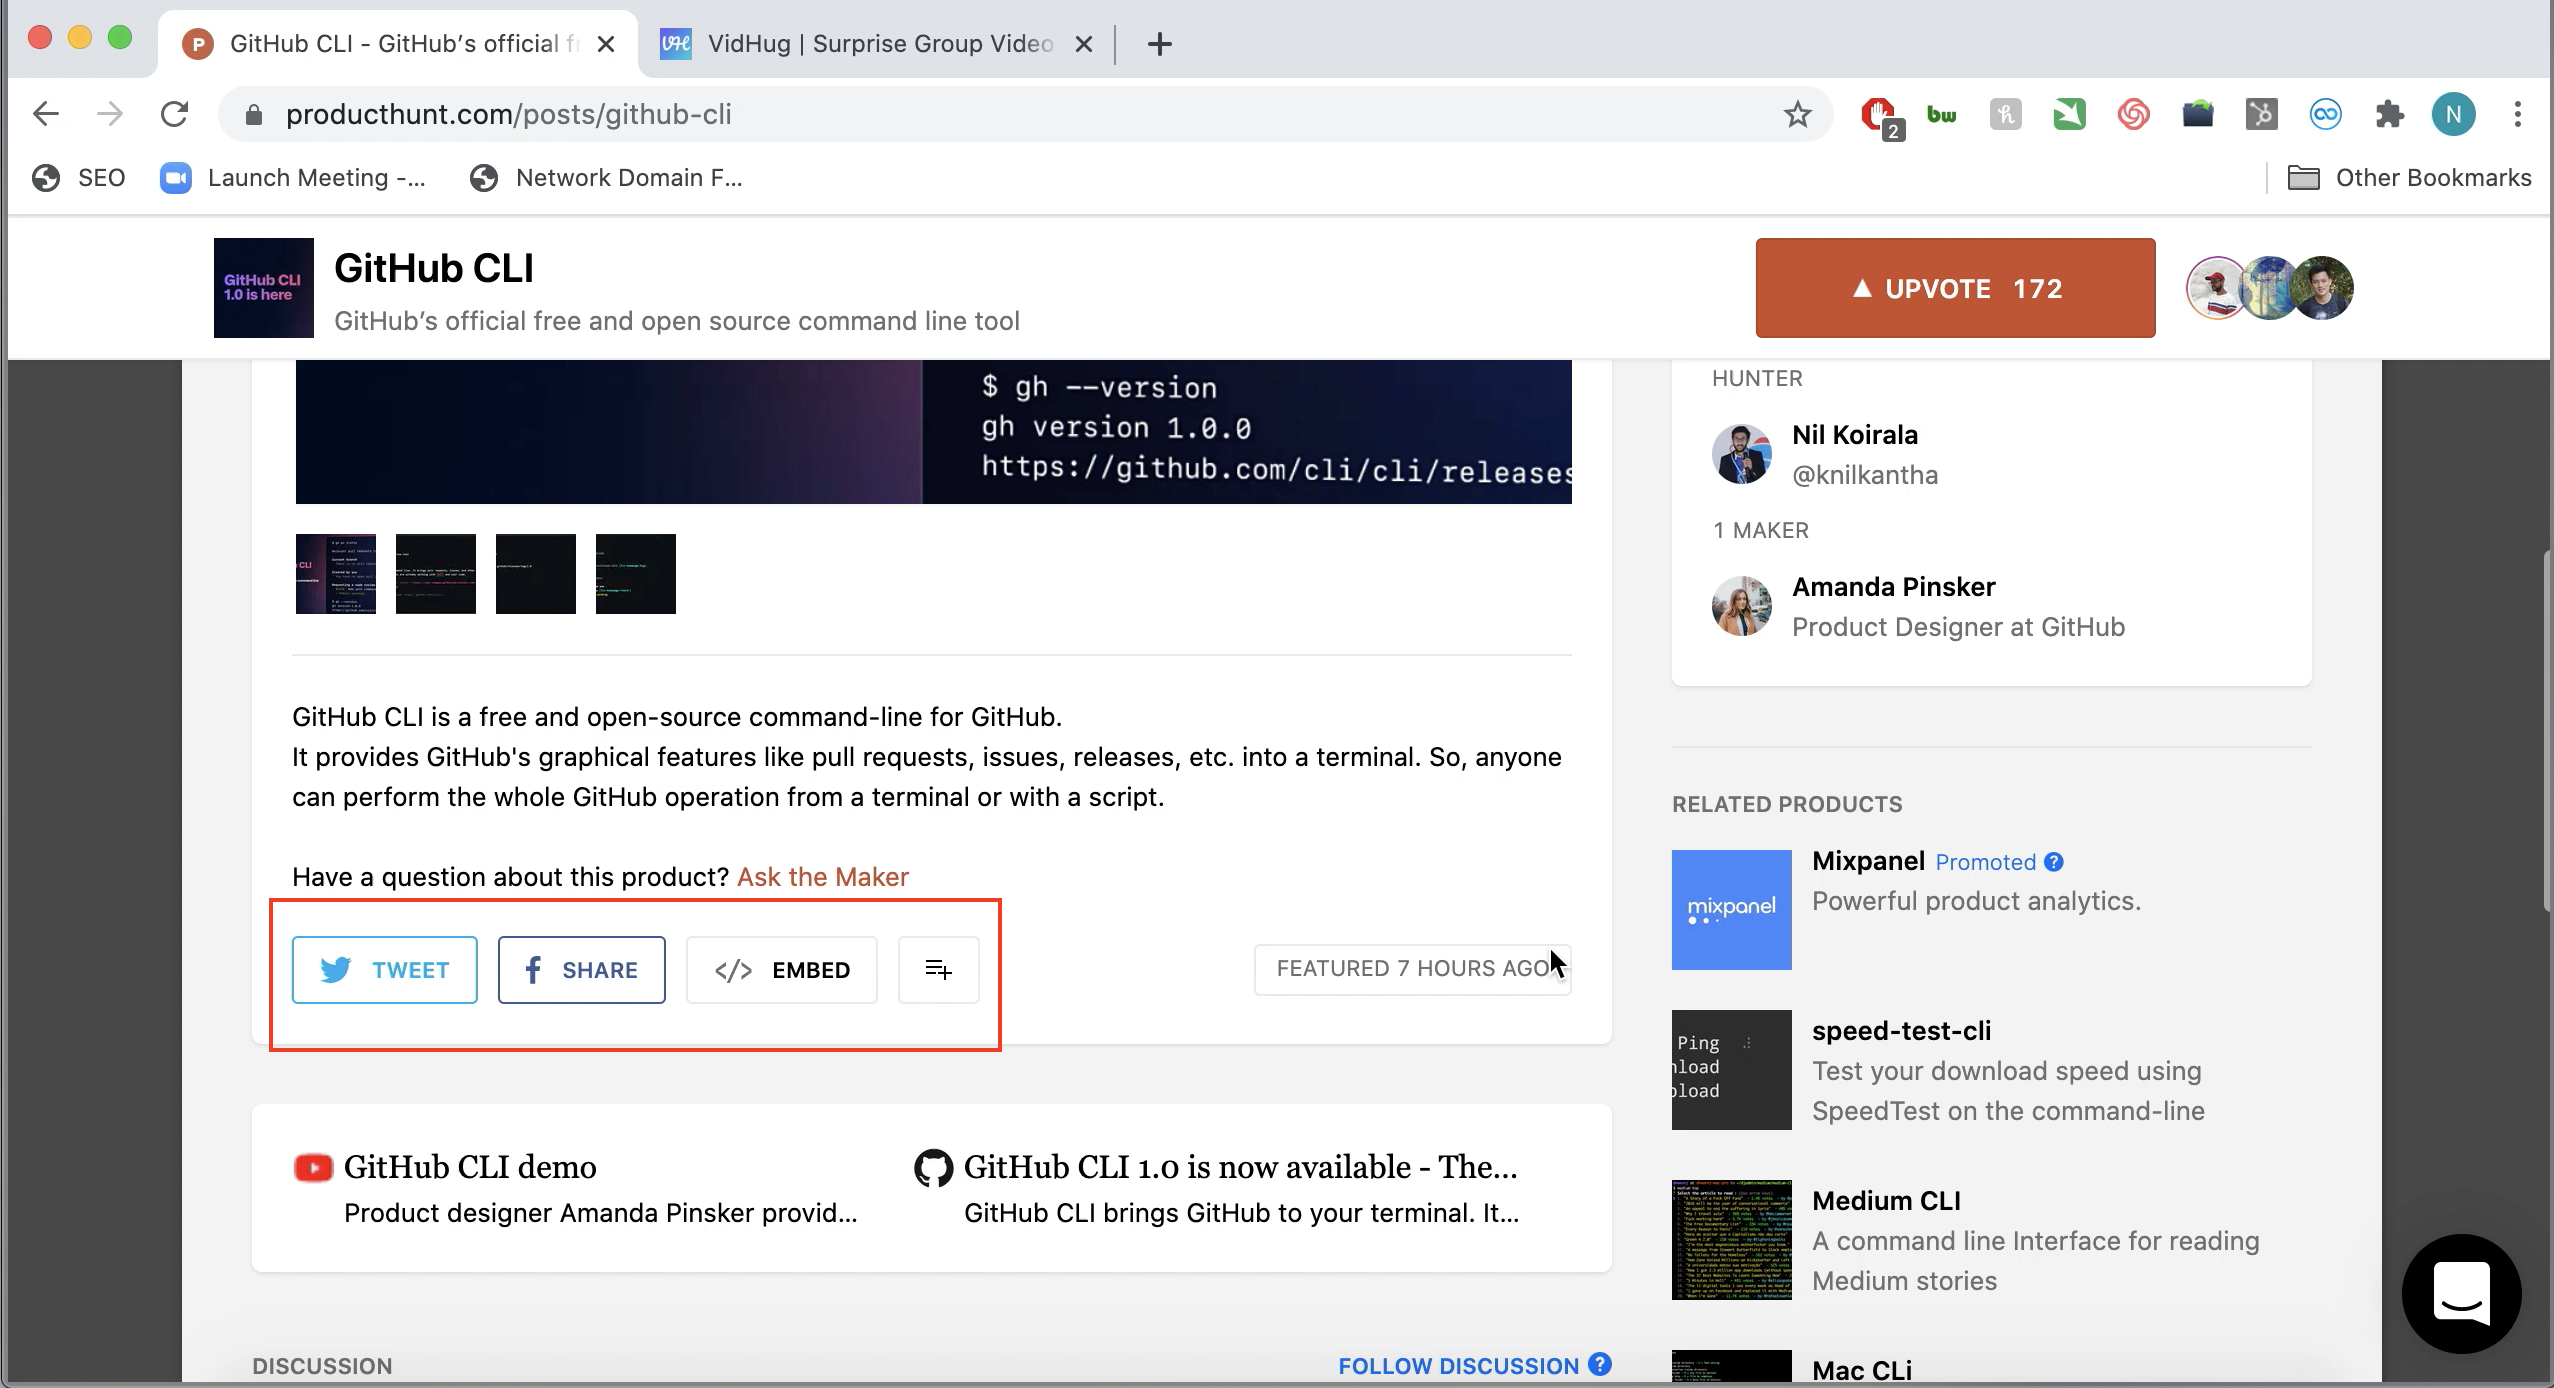 Launching Your Product on Product Hunt - Share your Product Hunt listing on social media